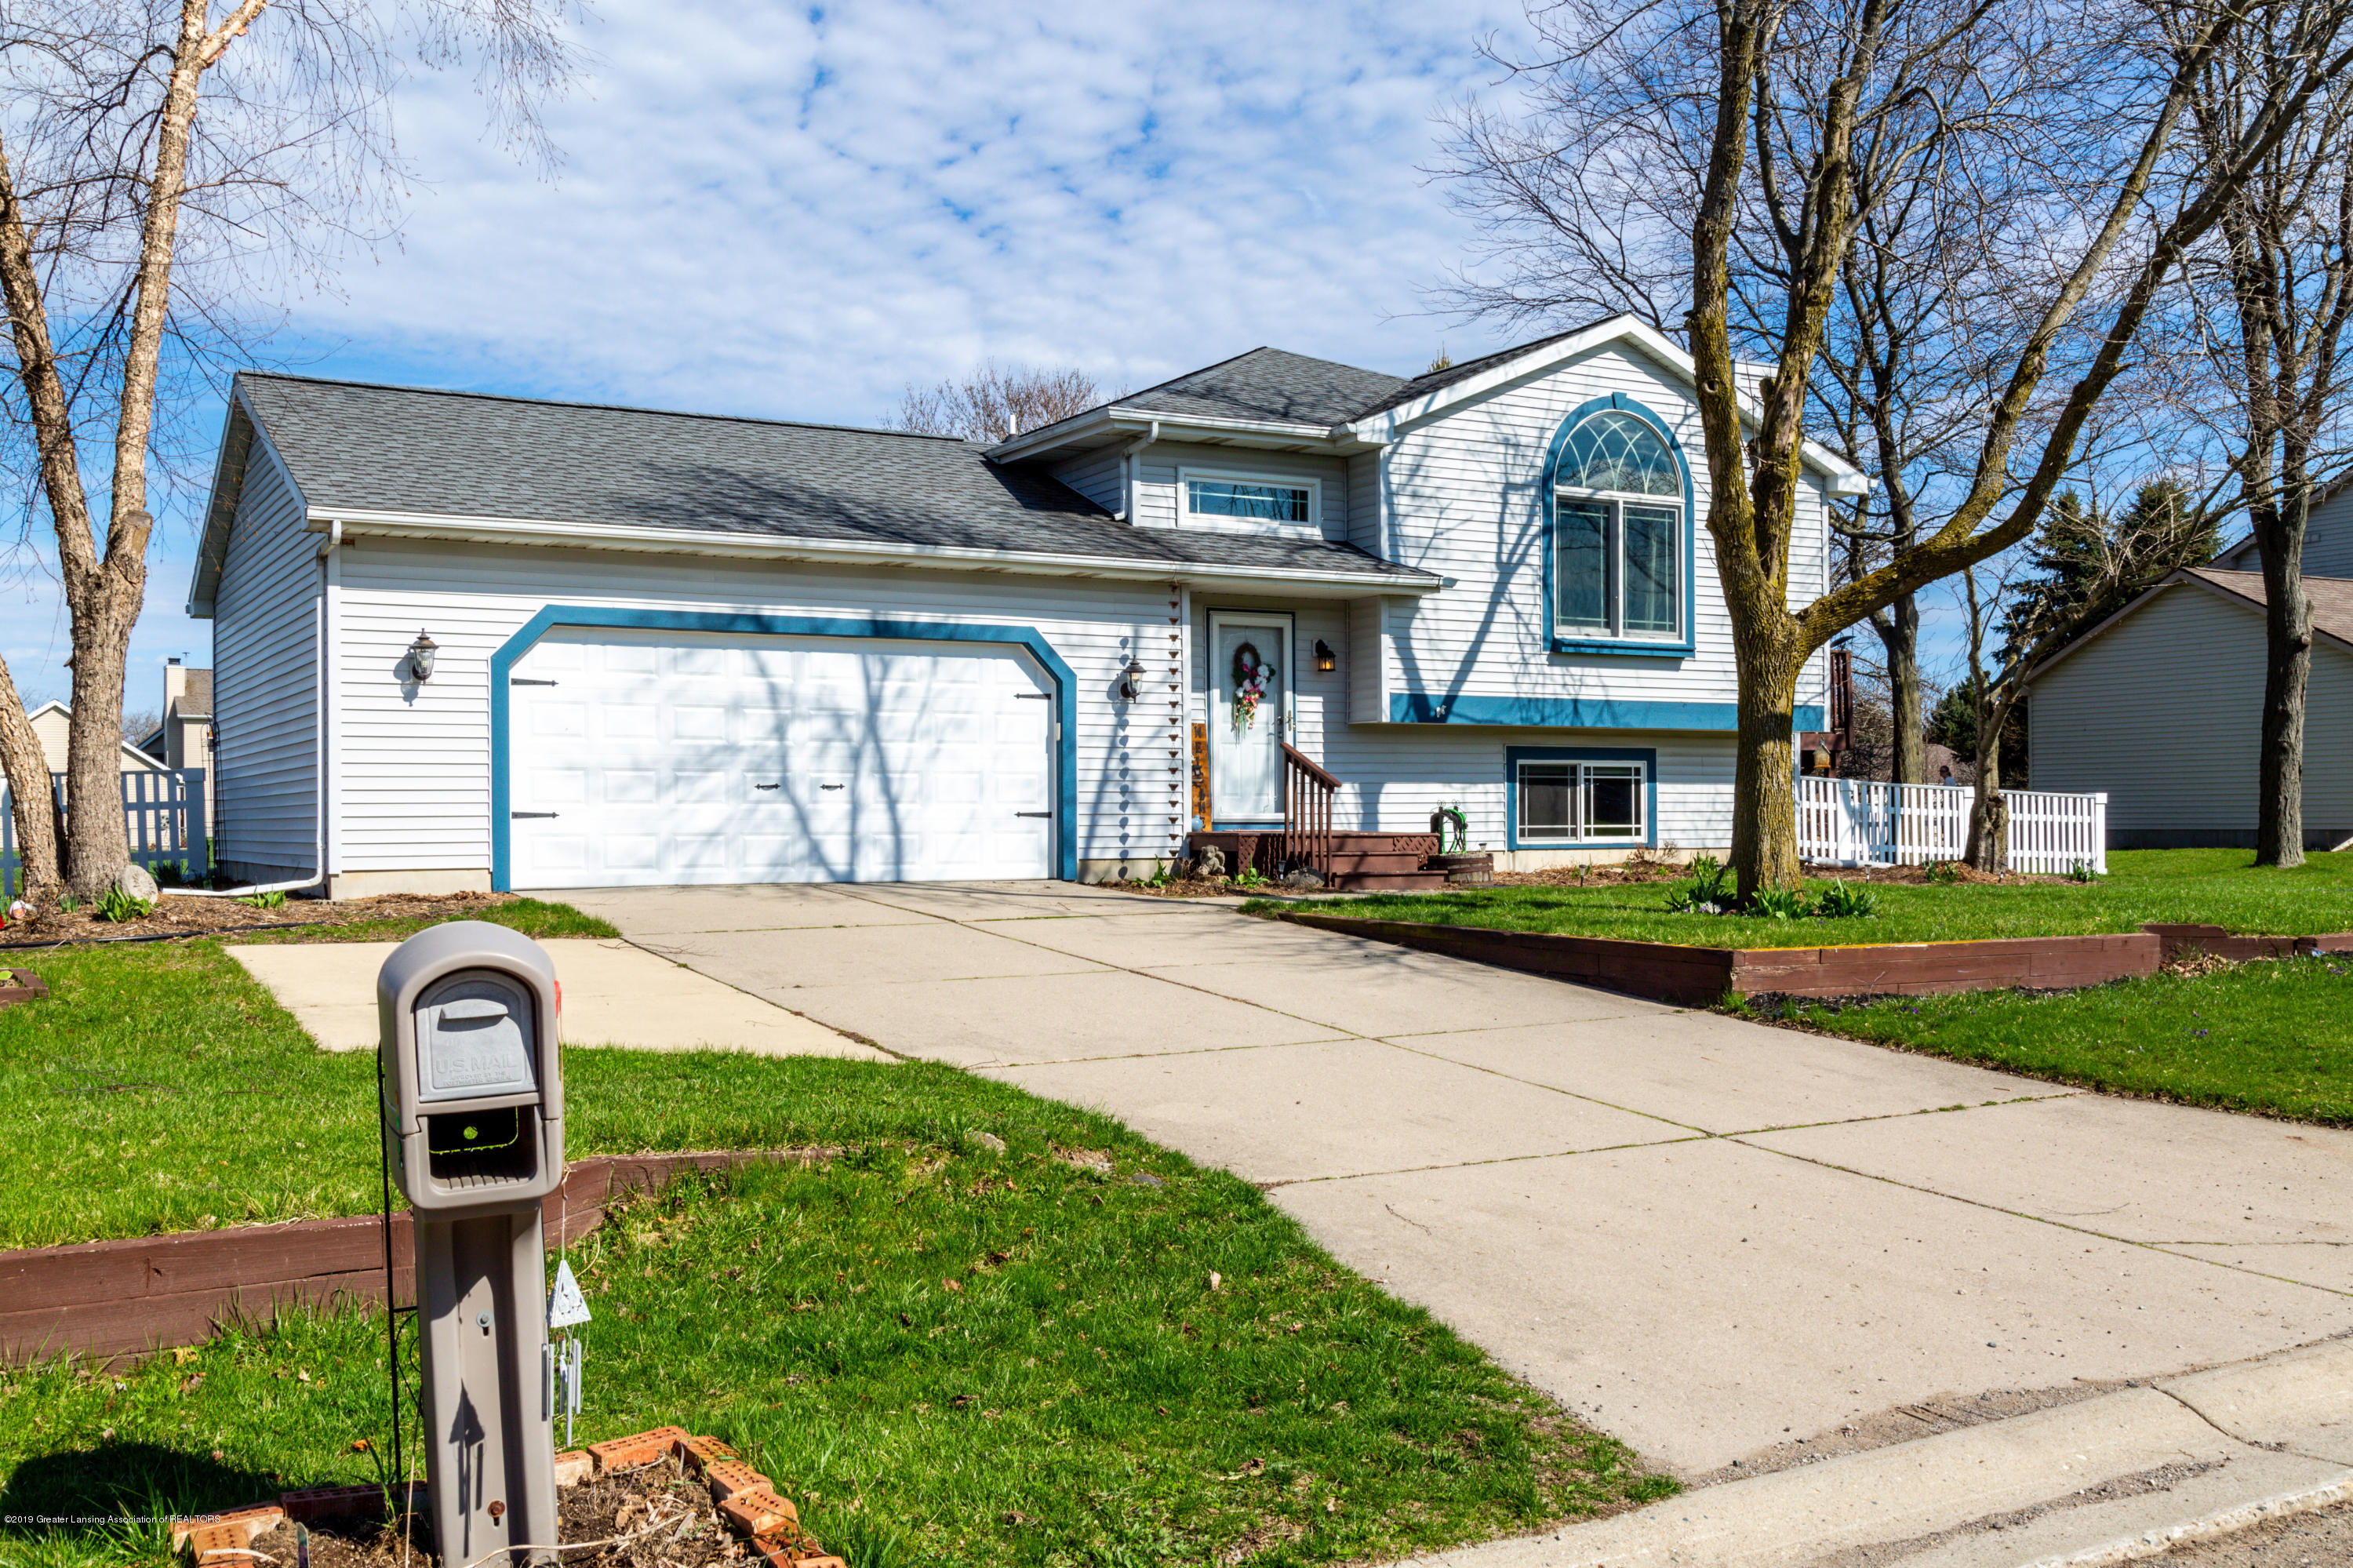 2450 Featherstone Dr - 20190421-942A2196 - 44